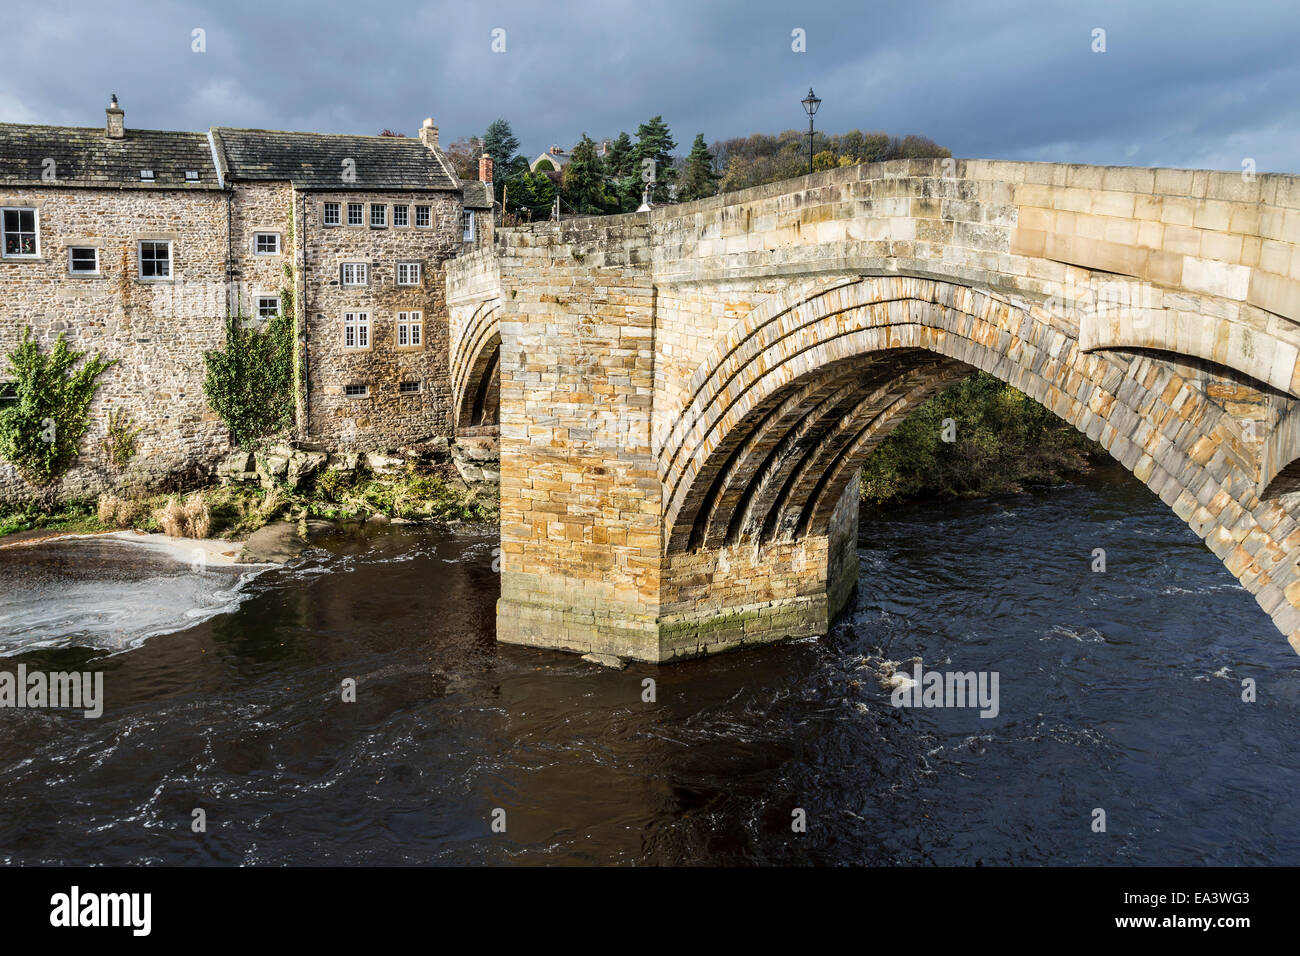 The County Bridge Over the River Tees Between Barnard Castle and Startforth, Teesdale County Durham UK - Stock Image